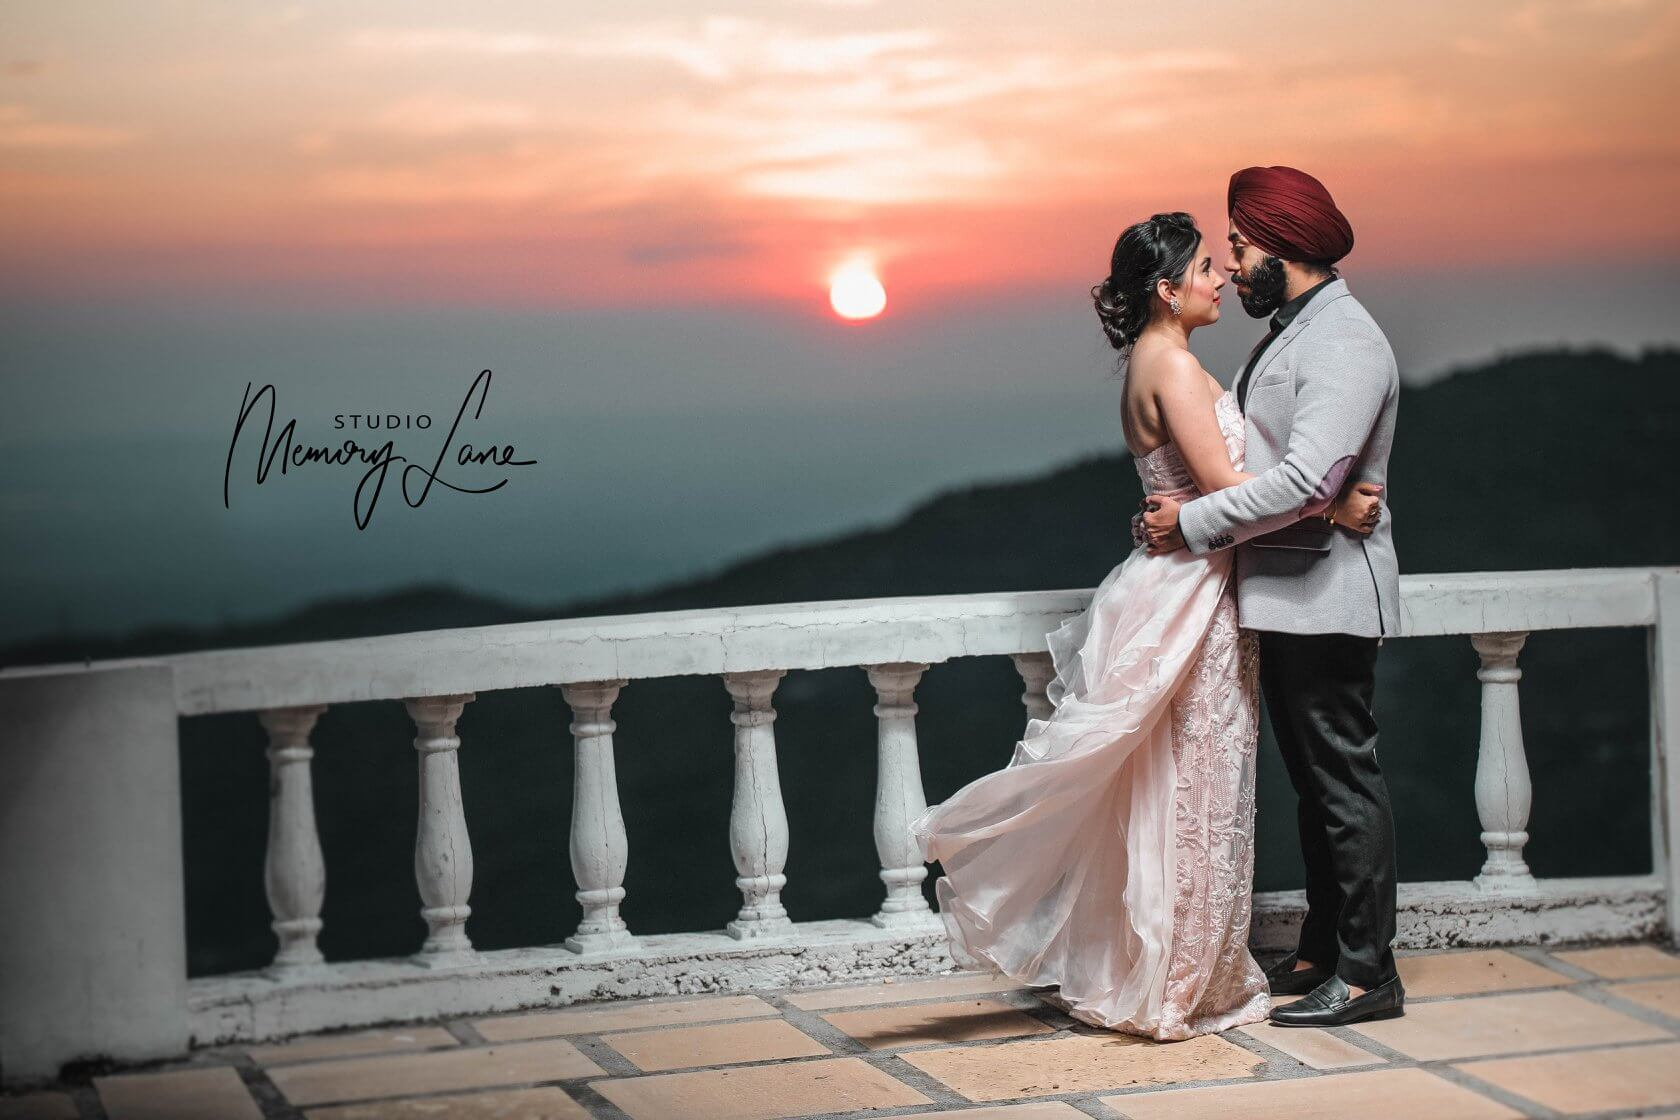 Pre-wedding photographers in Chandigarh | Cherishing togetherness!